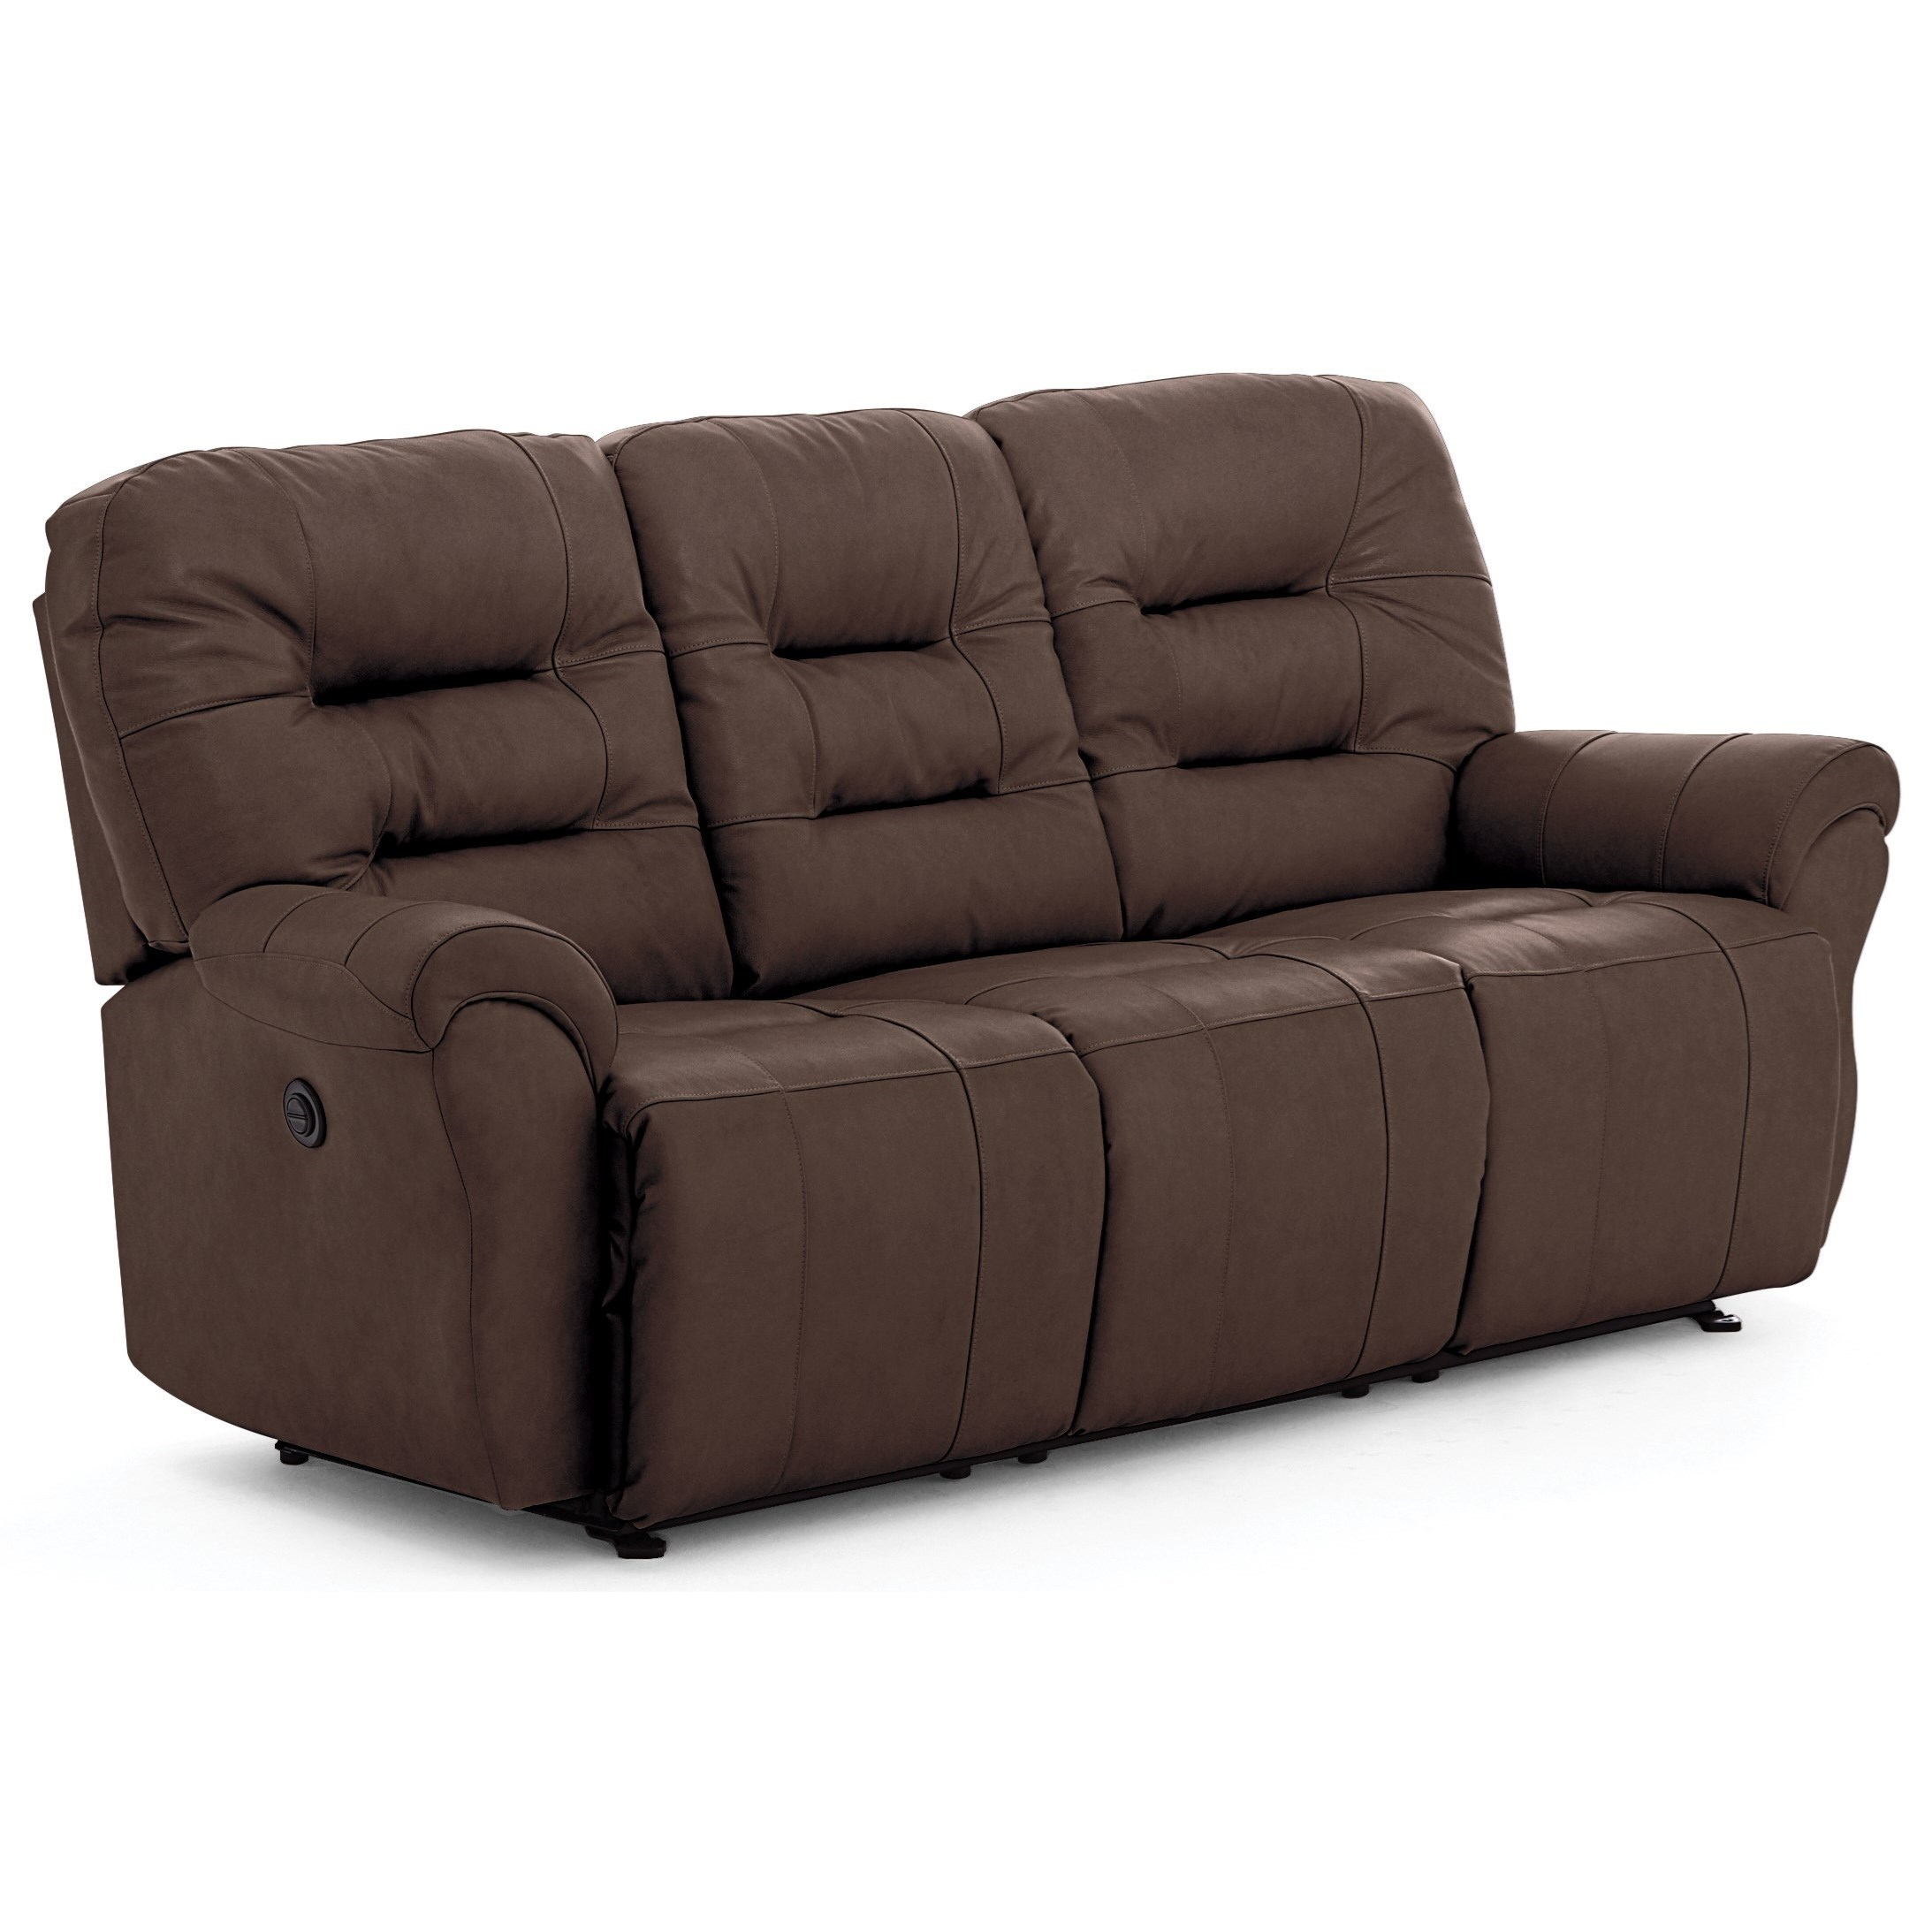 Unity Space Saver Sofa Chaise by Best Home Furnishings at Turk Furniture